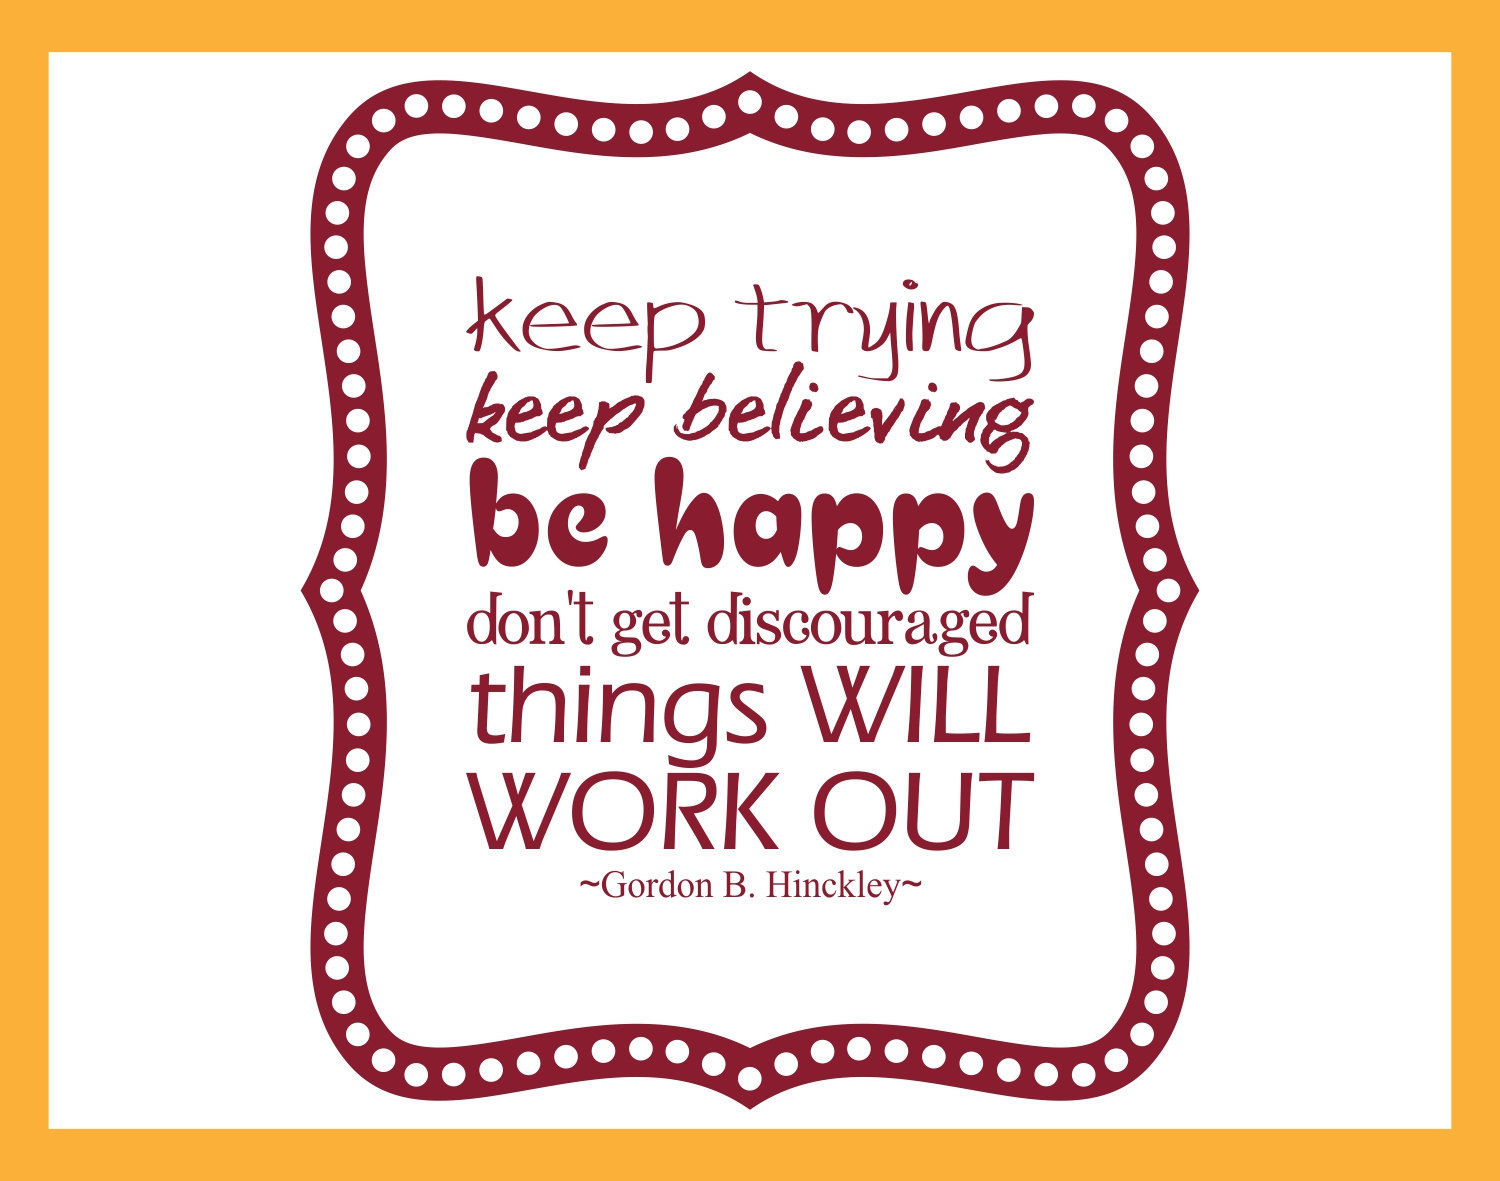 Gordon B Hinckley Quotes Keep Trying Keep Believing Be Happy Discouraged Will Work